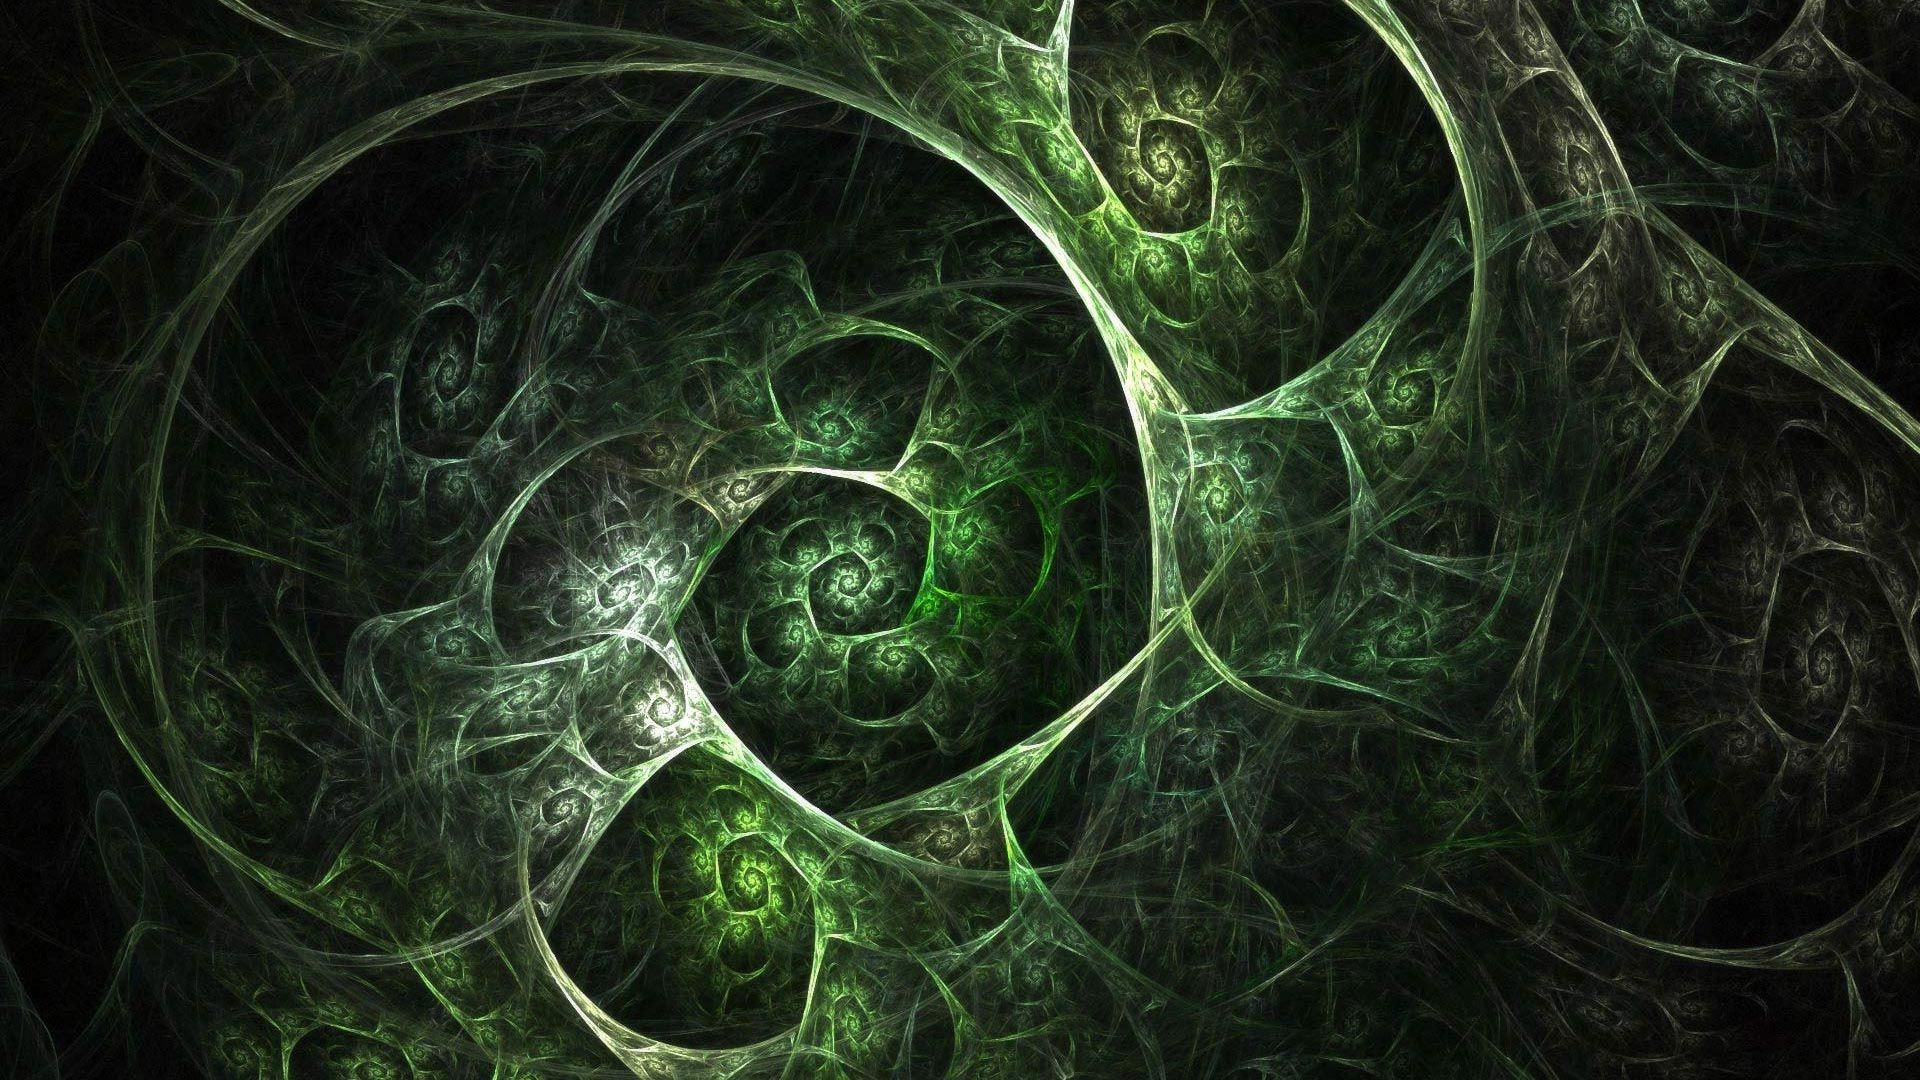 Hd Fractals Wallpapers 1080p Fractal Art Abstract Wallpaper Art Wallpaper